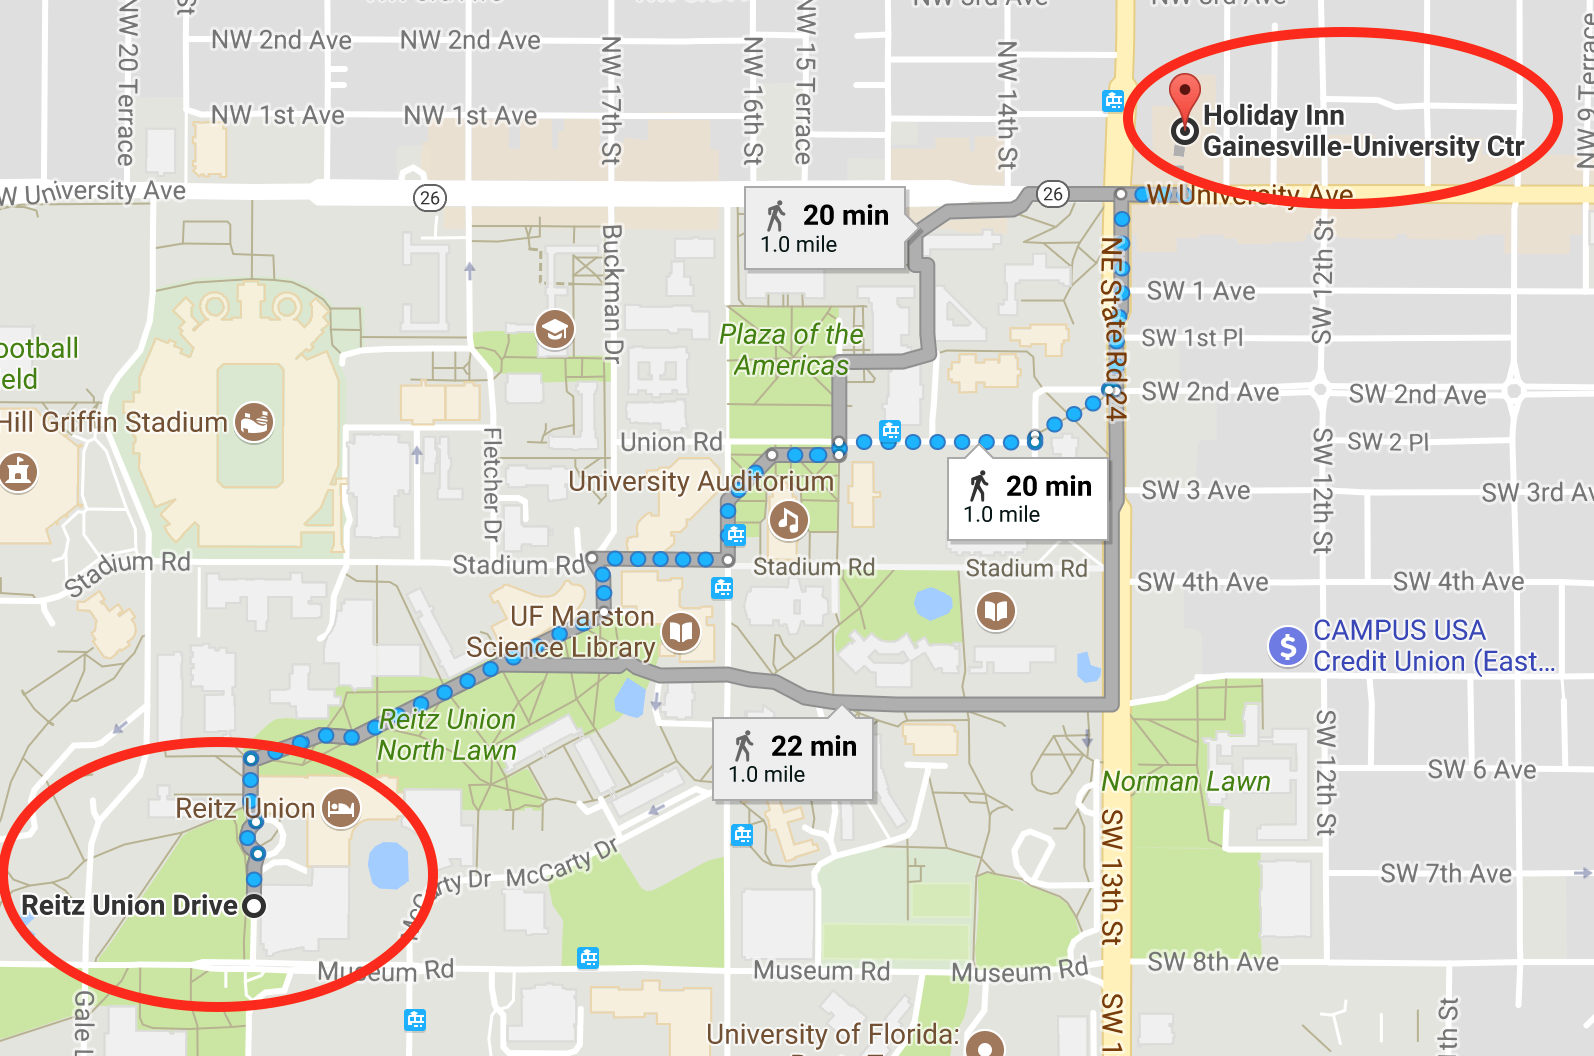 Directions from the Holiday Inn to the Reitz Union